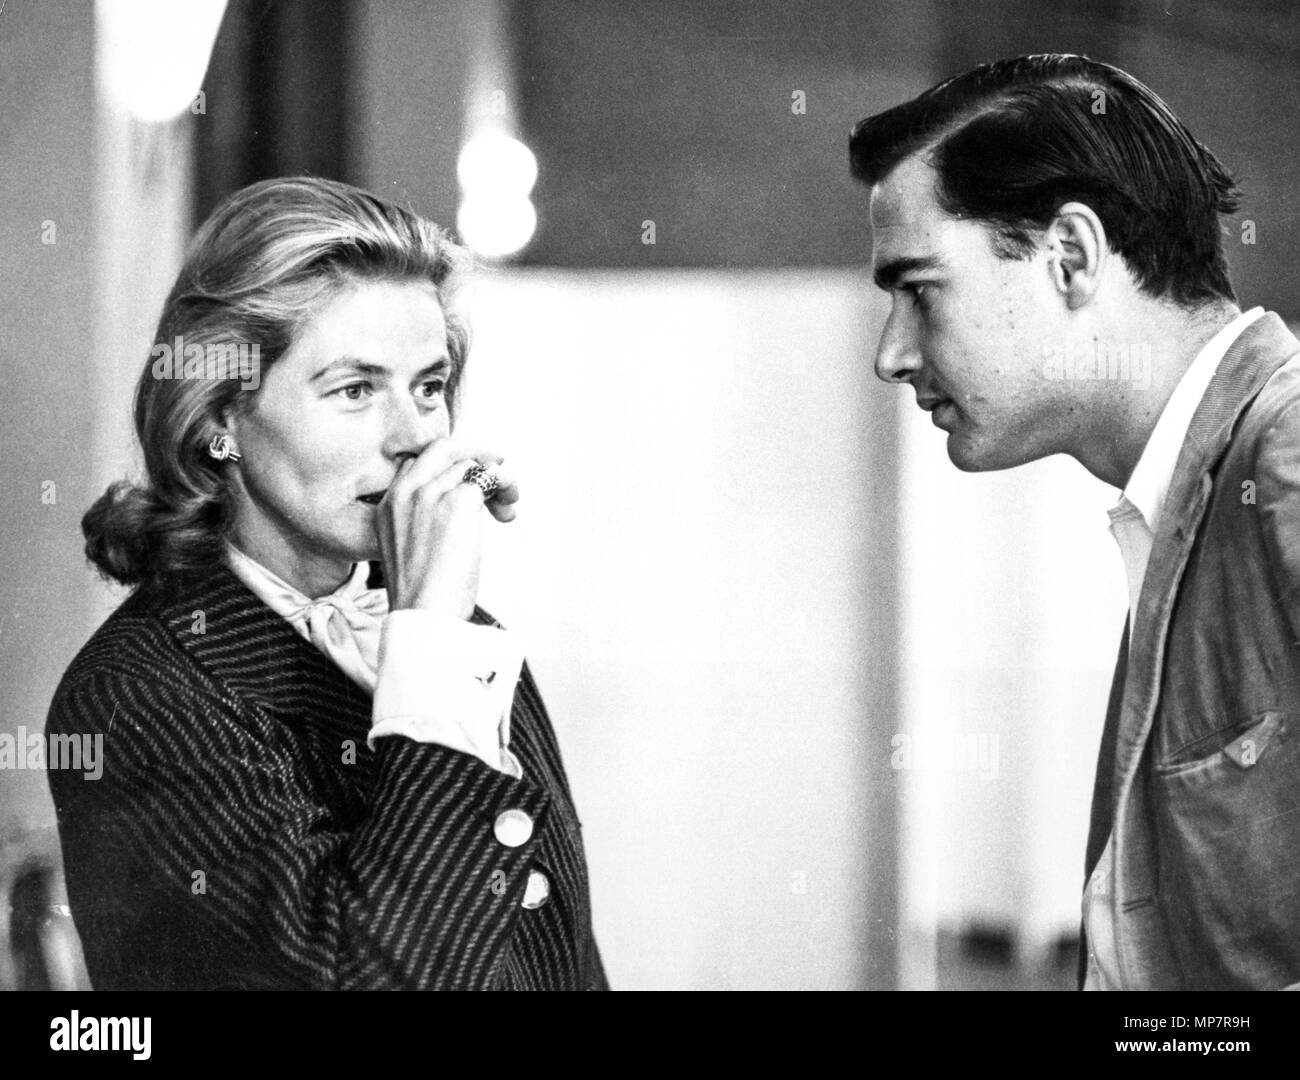 ingrid bergman, john frankenheimer, the turn of the screw, 1959 - Stock Image